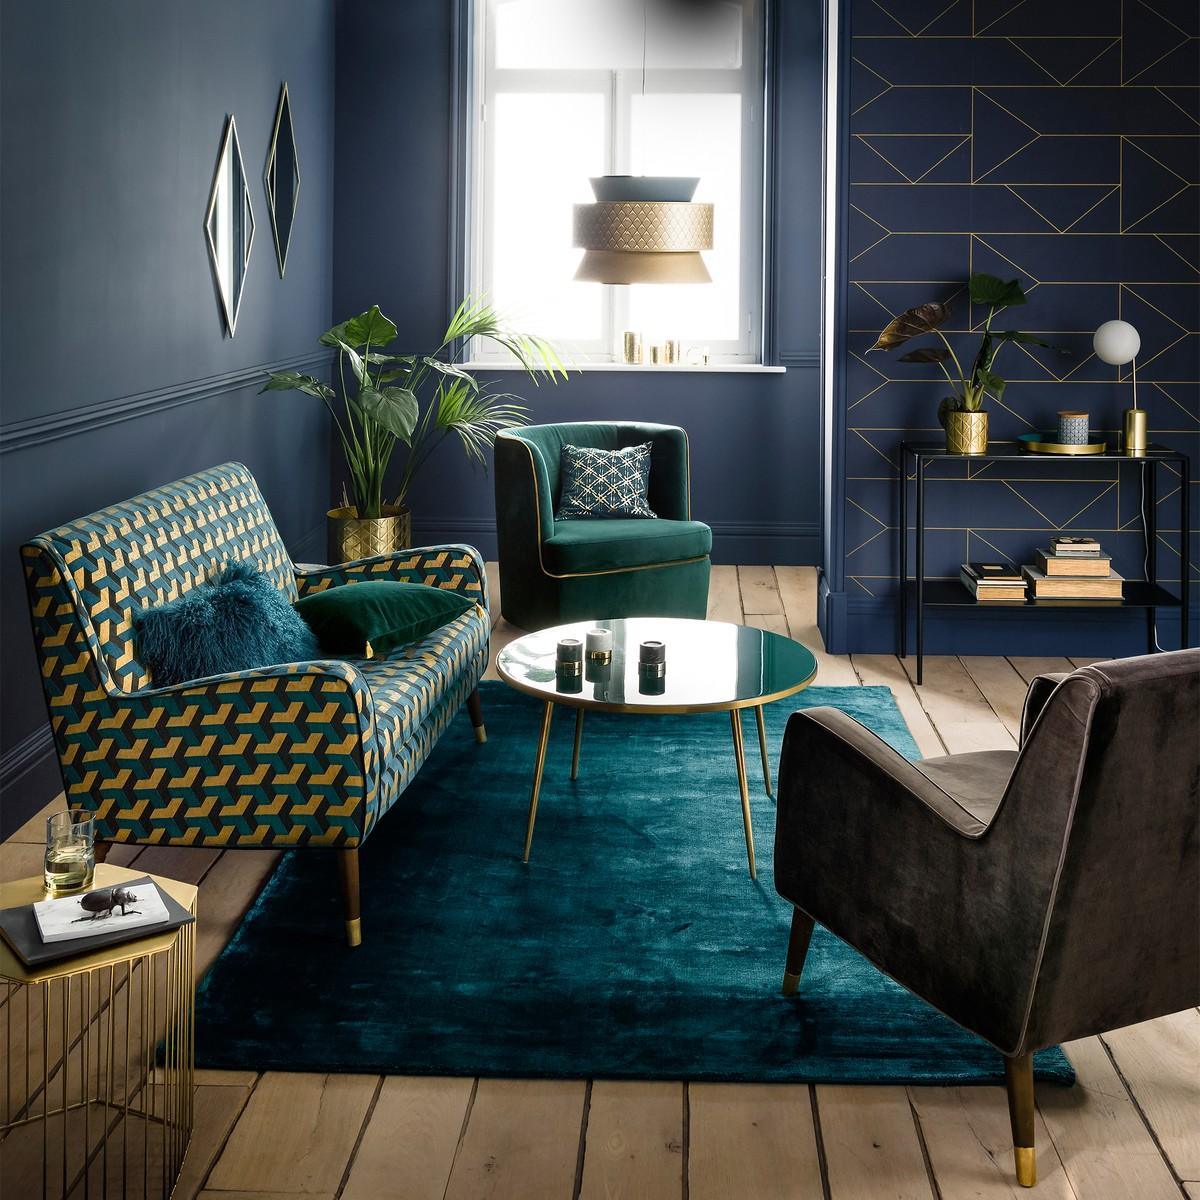 Green, gold and navy blue living room| Green Living Room Ideas | kittyandb.com | #greenandblue #colourfulhomedecor #greenlivingroom #bluewalls